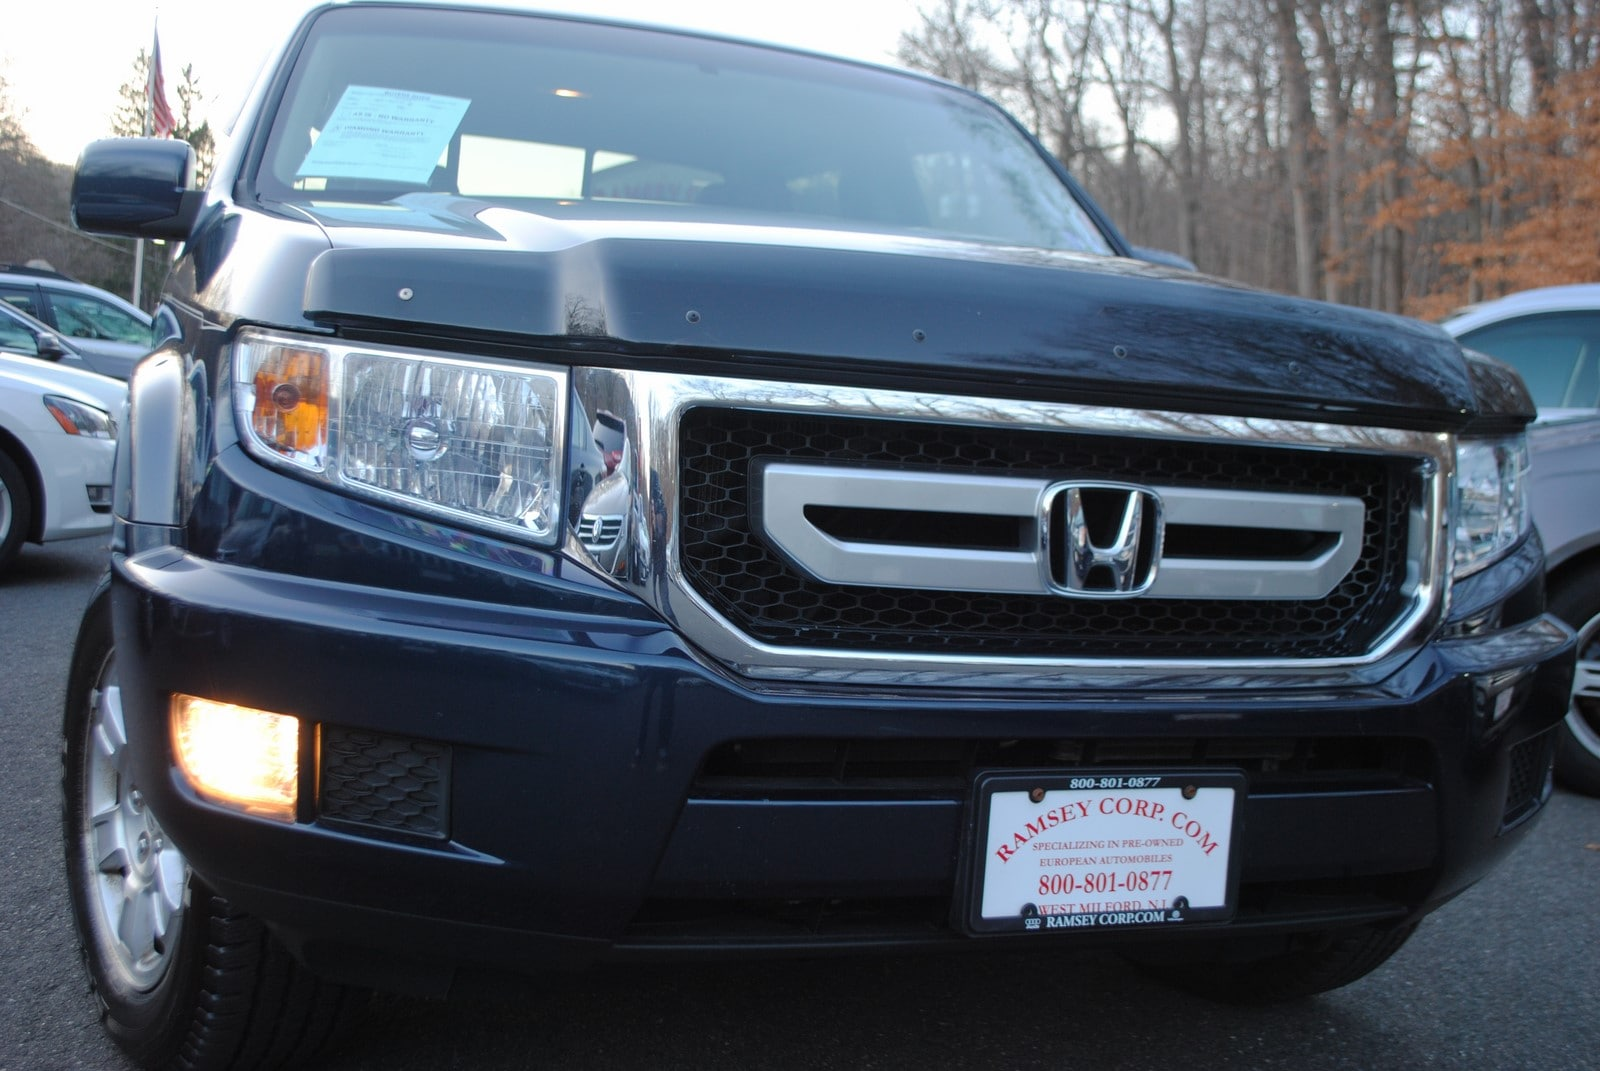 used 2009 honda ridgeline for sale west milford nj. Black Bedroom Furniture Sets. Home Design Ideas